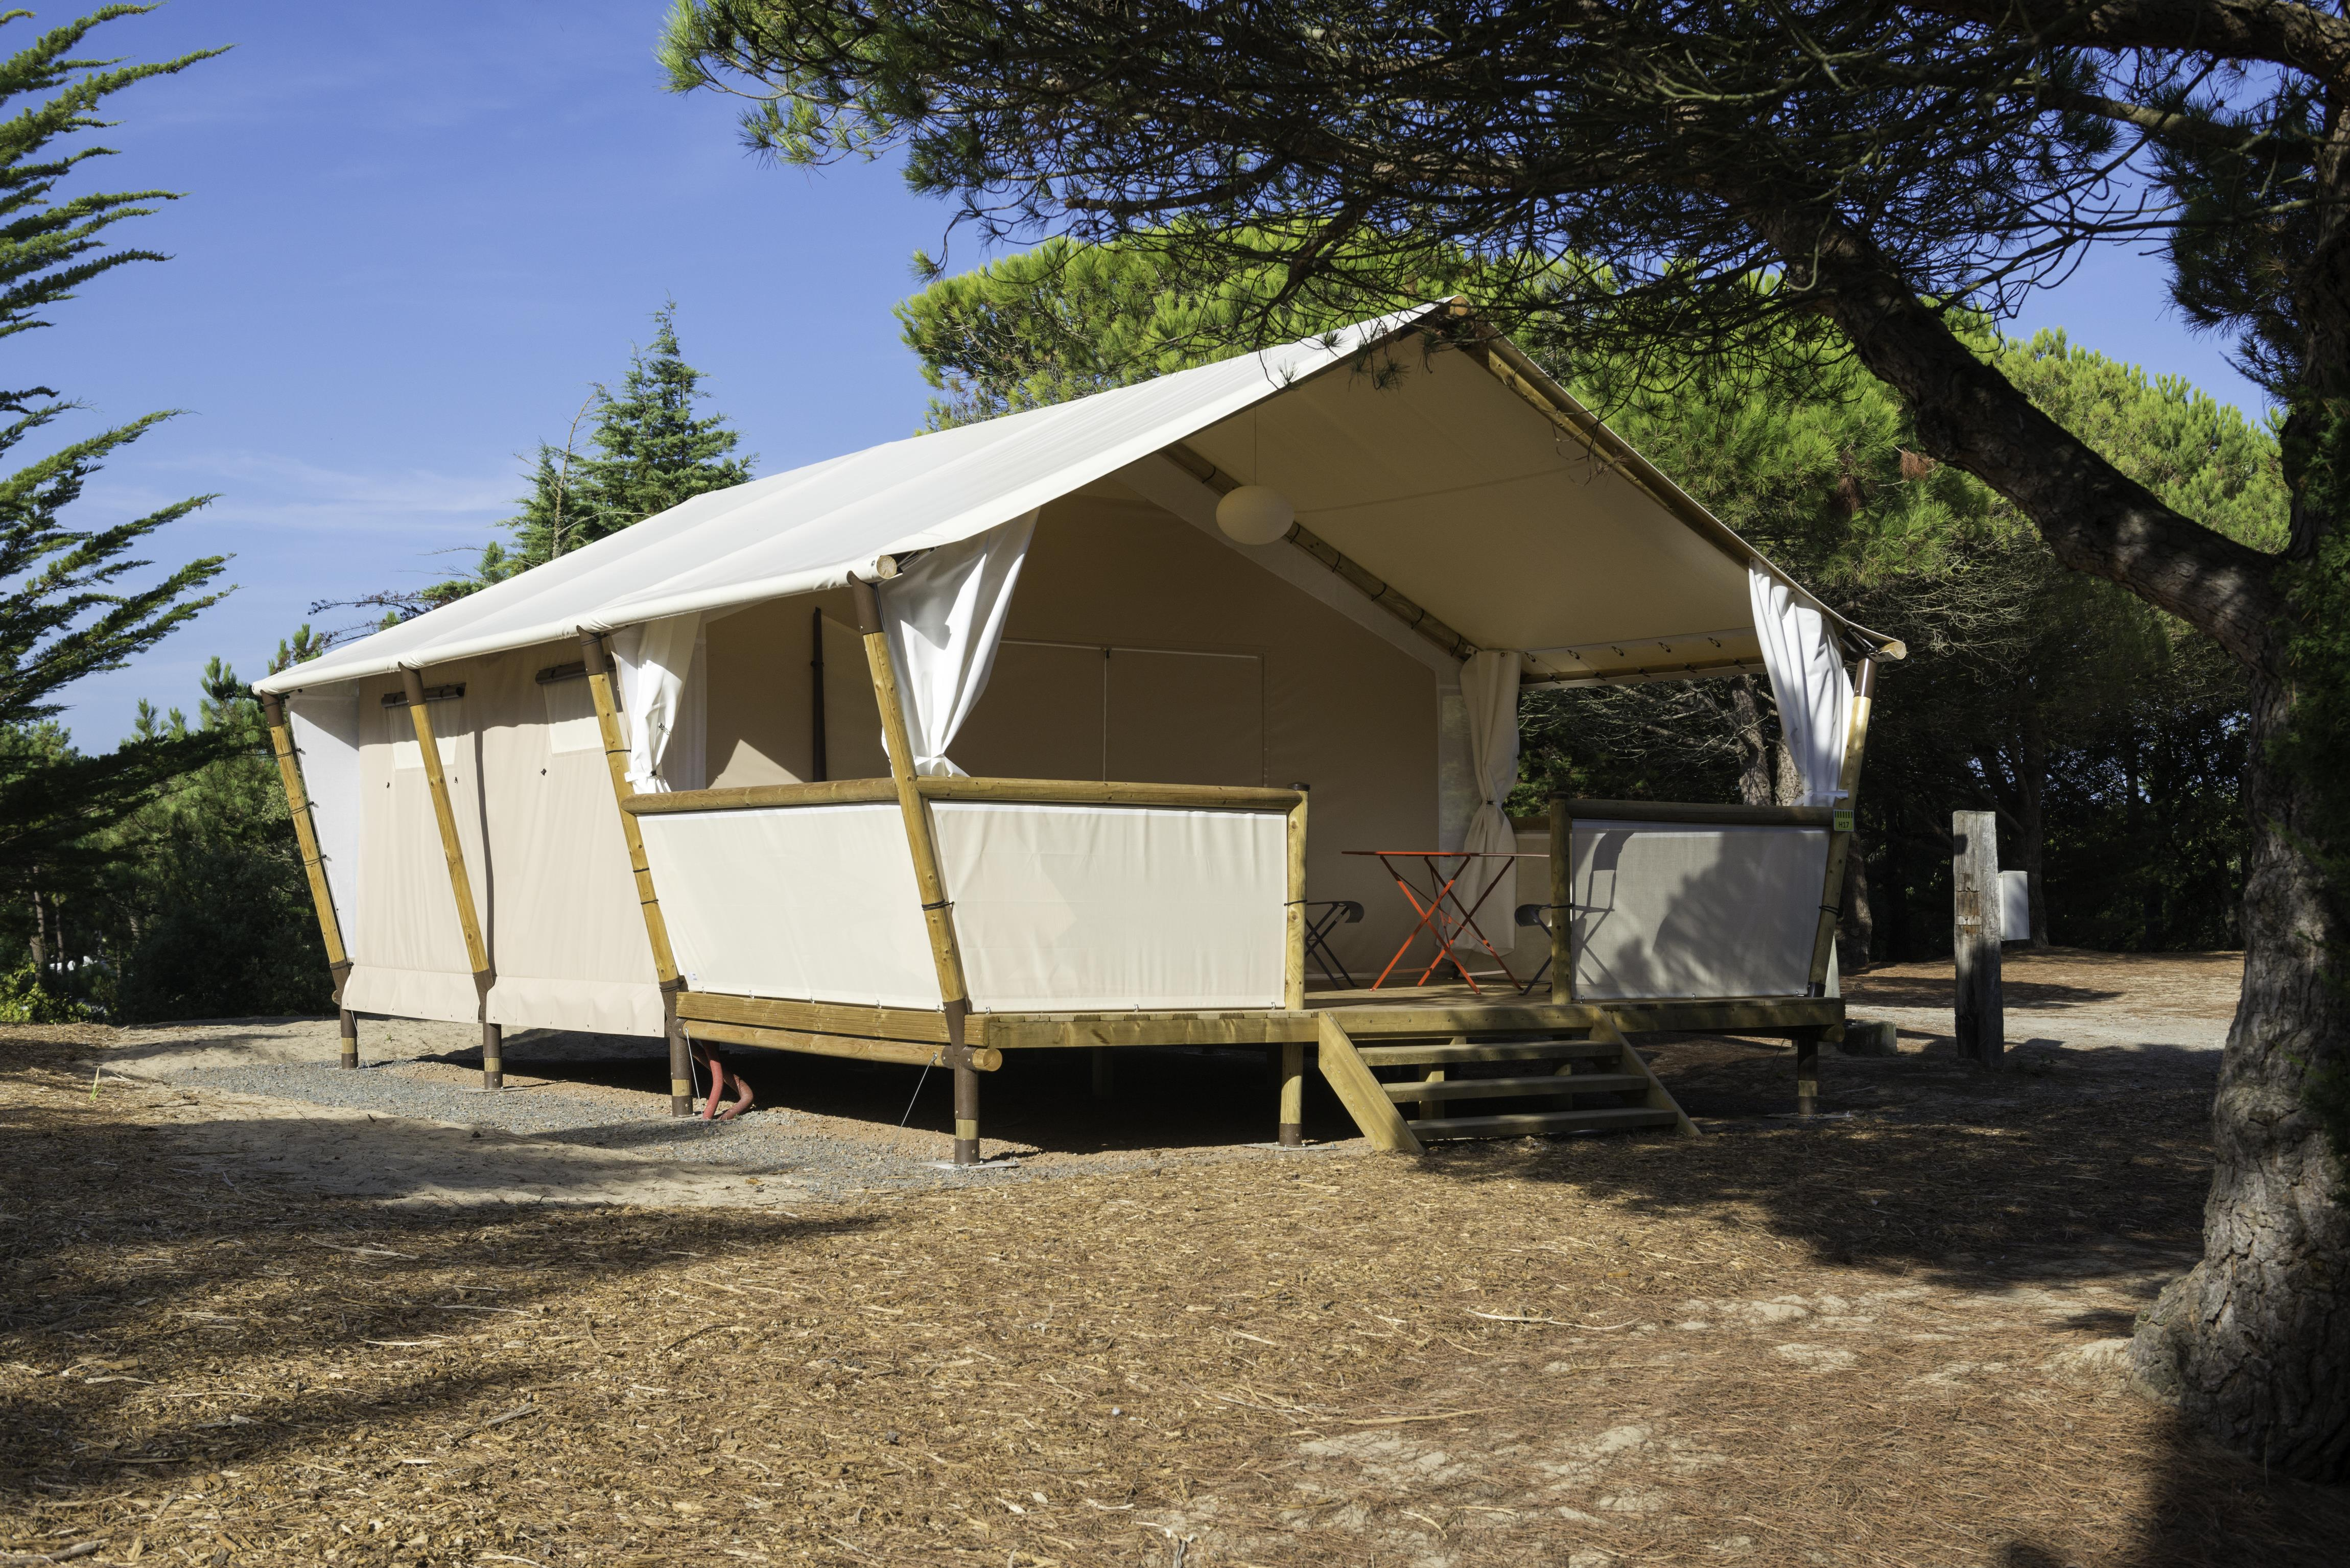 Location - Pagan Lodge Maasaï 2 Chambres - Camping Campéole Clairefontaine